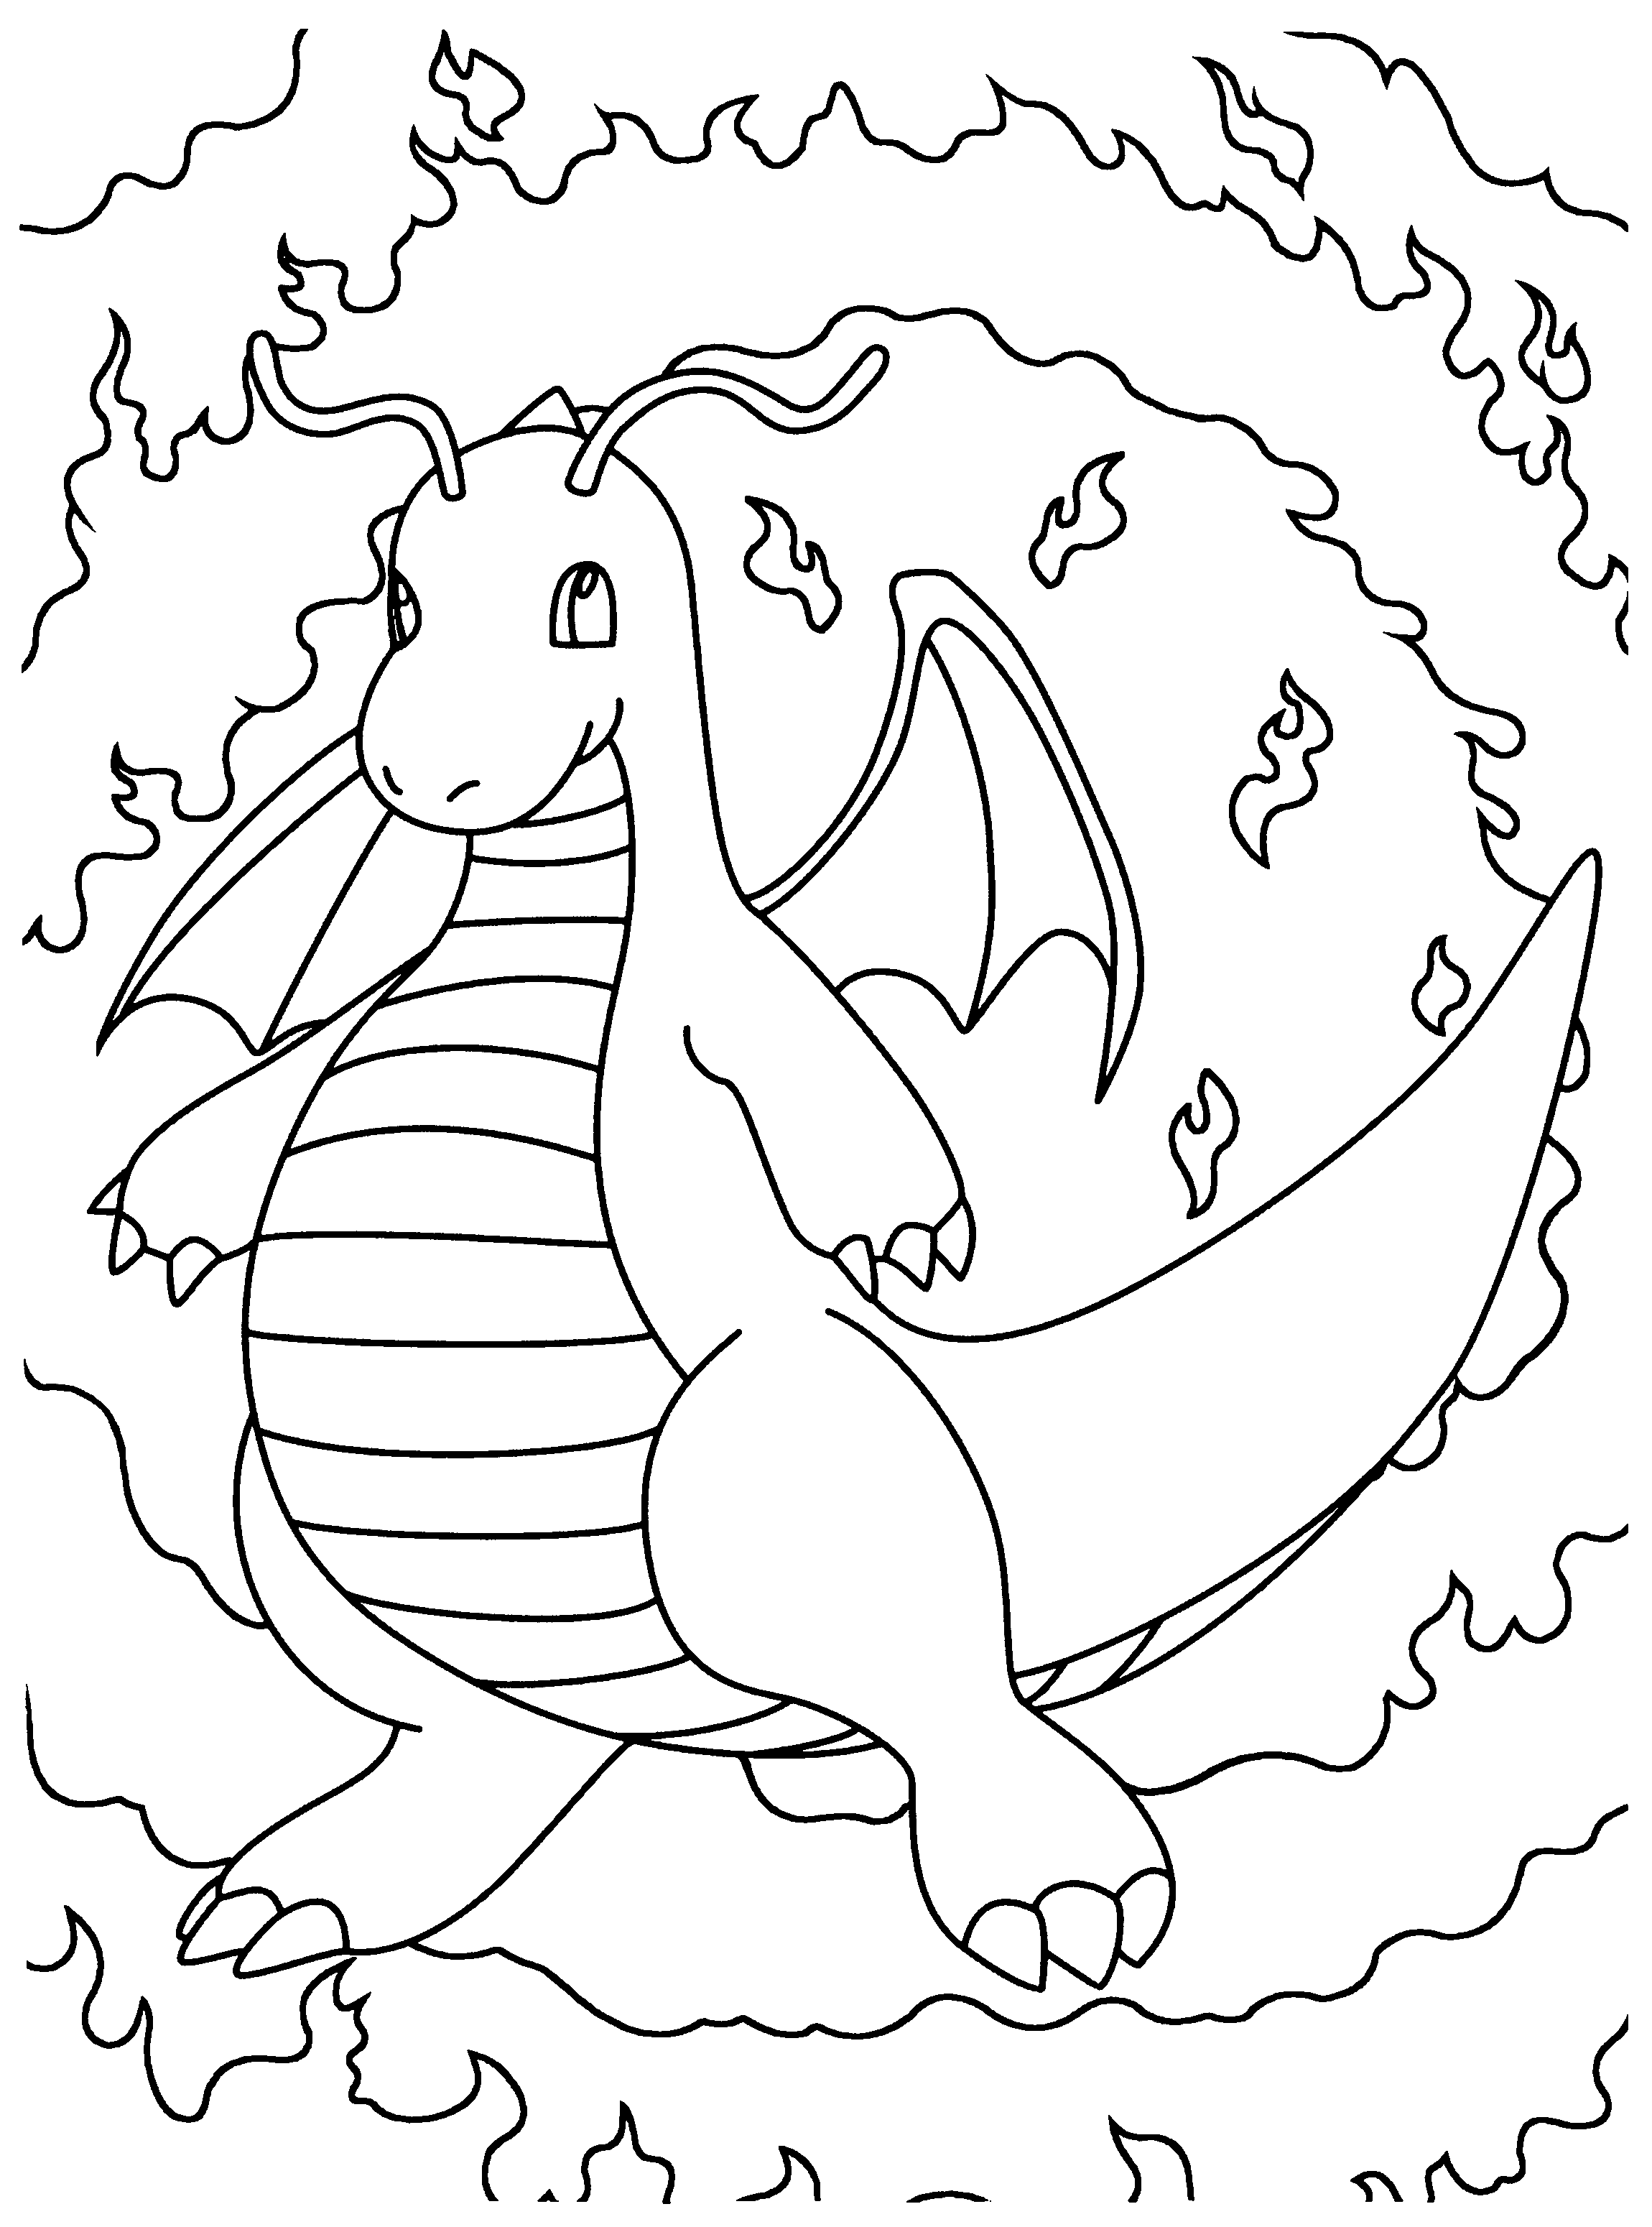 Dragonite Ergu